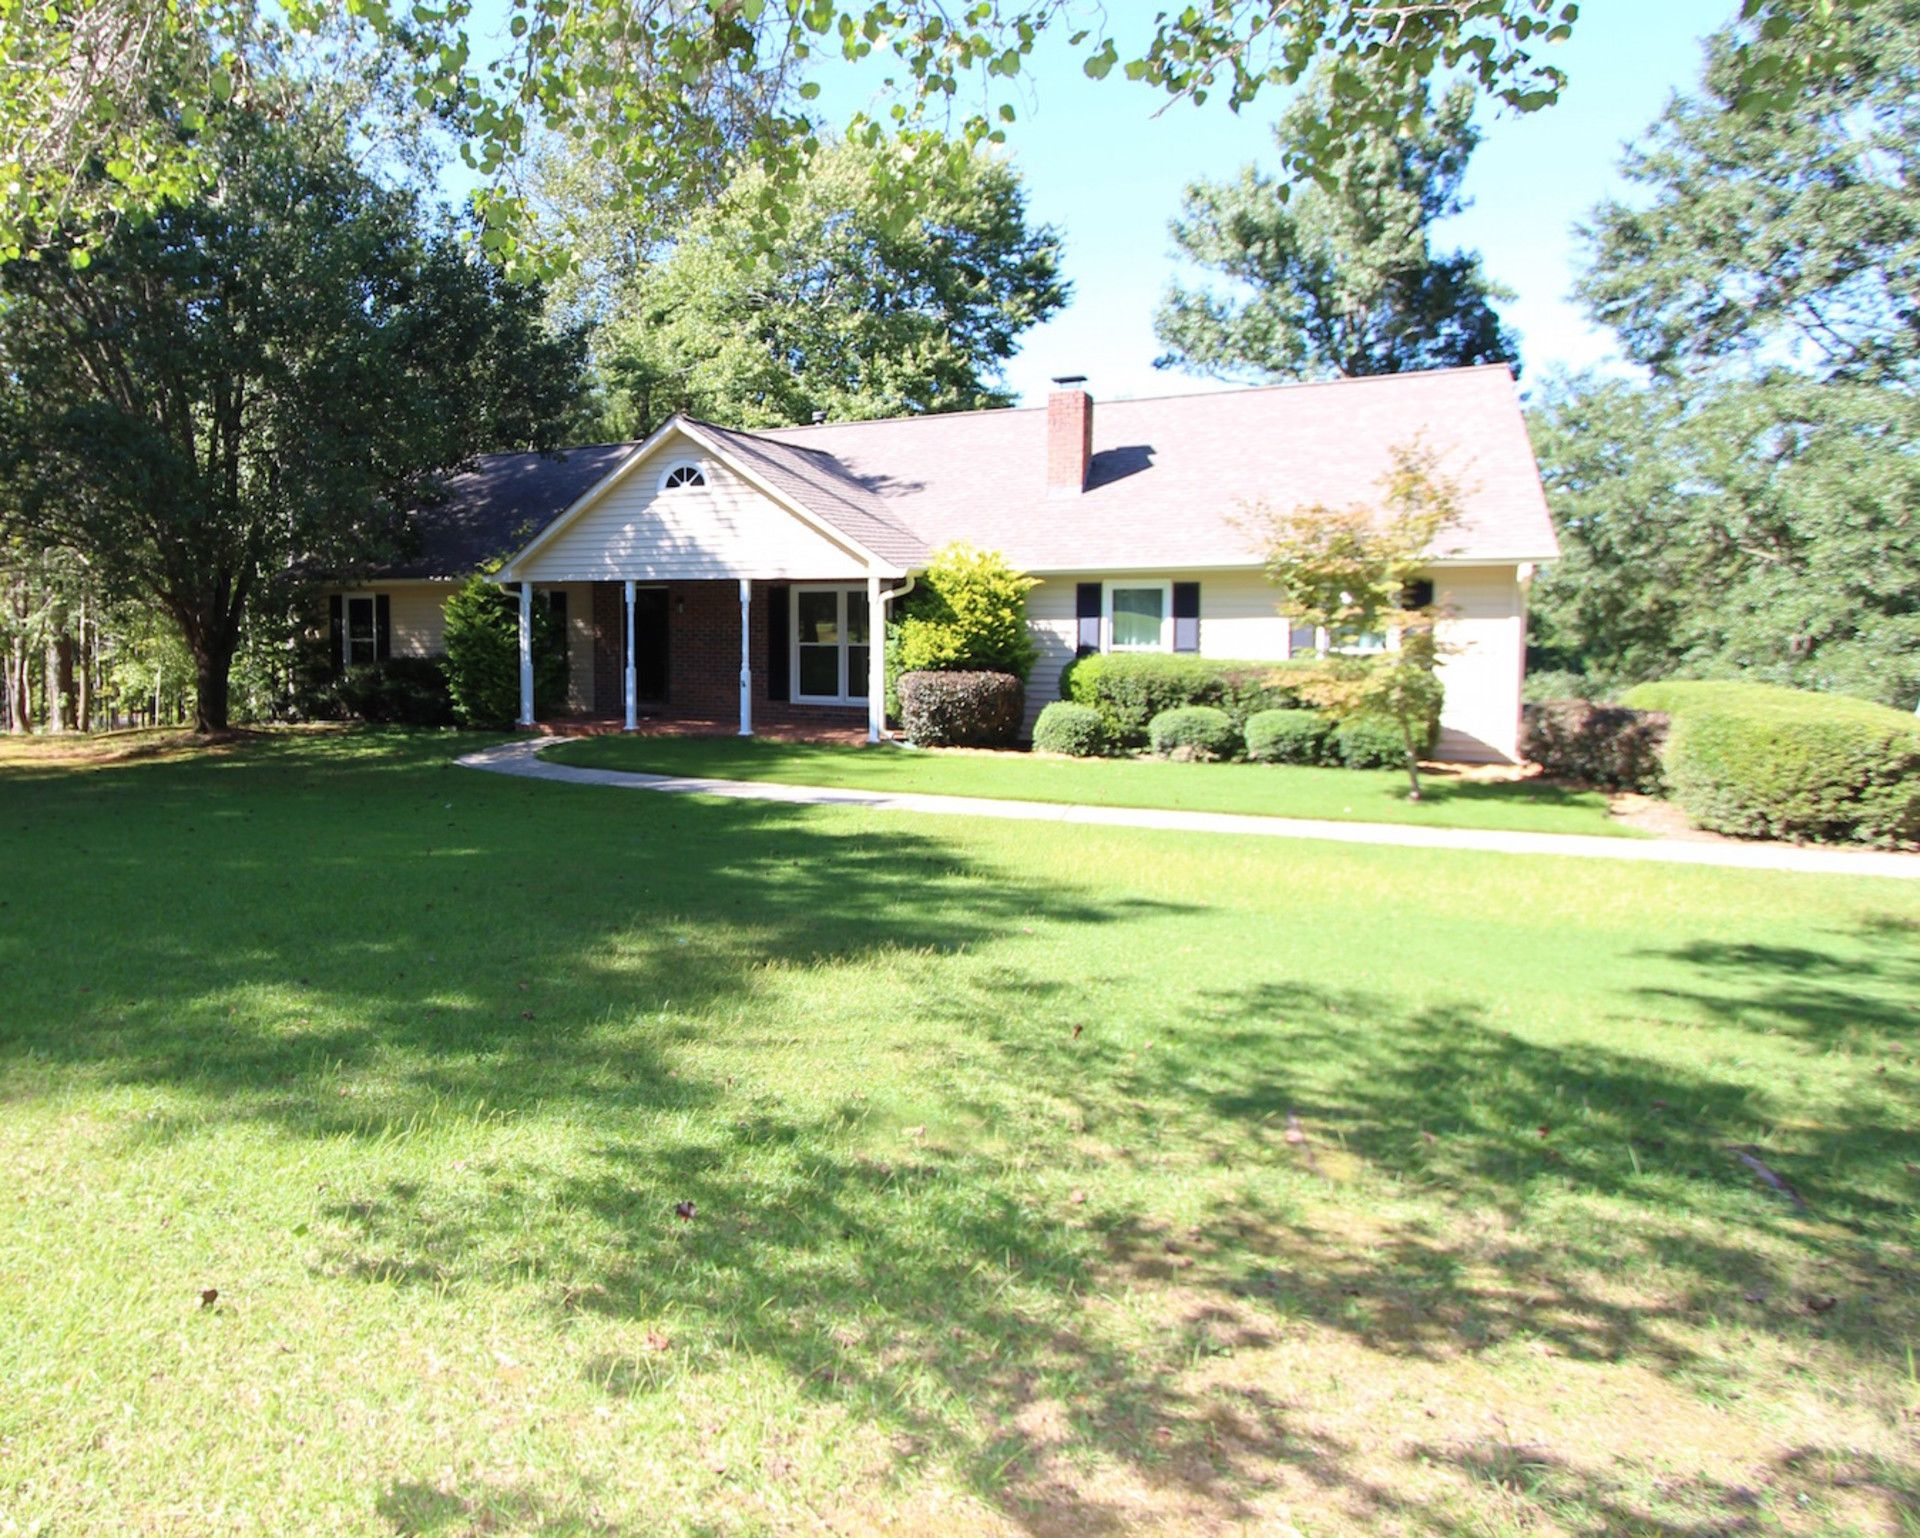 Huge Price Drop For This Updated Ranch Home On 4 Acres In Canton Ga If You Re Looking For Less Steps And More Land Don T Let T Ranch House Acre Outdoor Decor